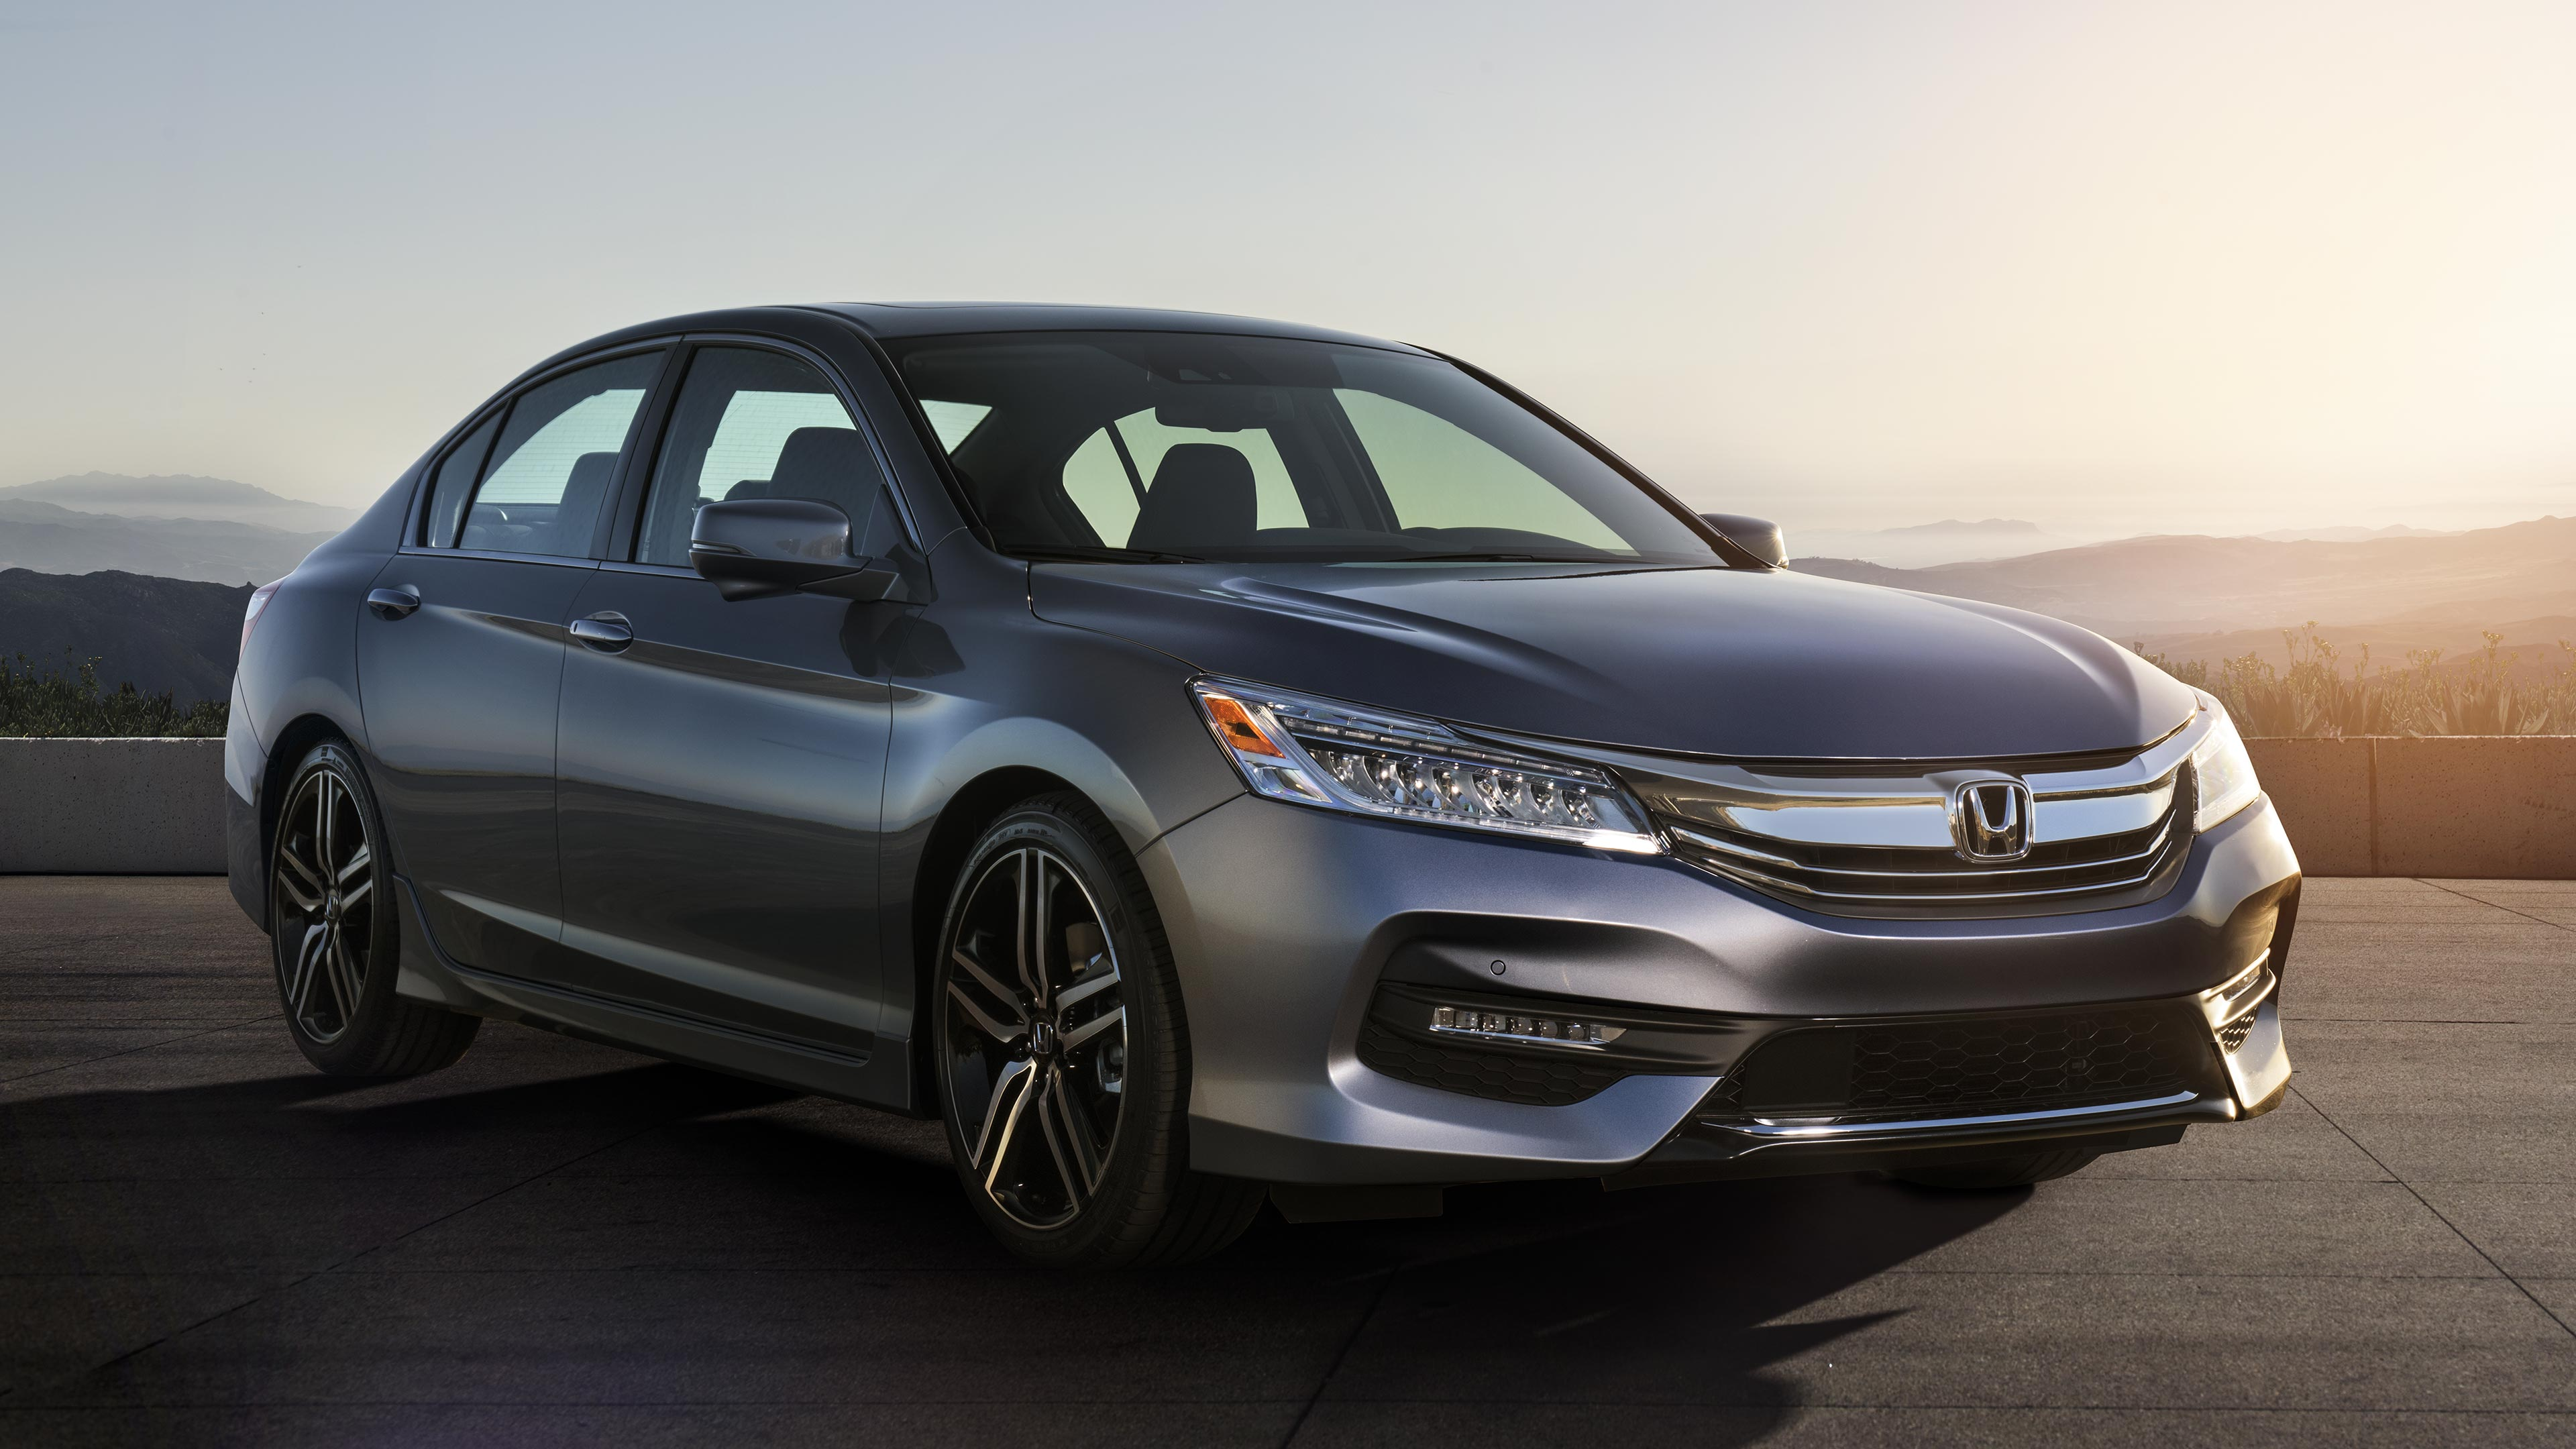 accord car price reviews photos review new and honda best prices design specs